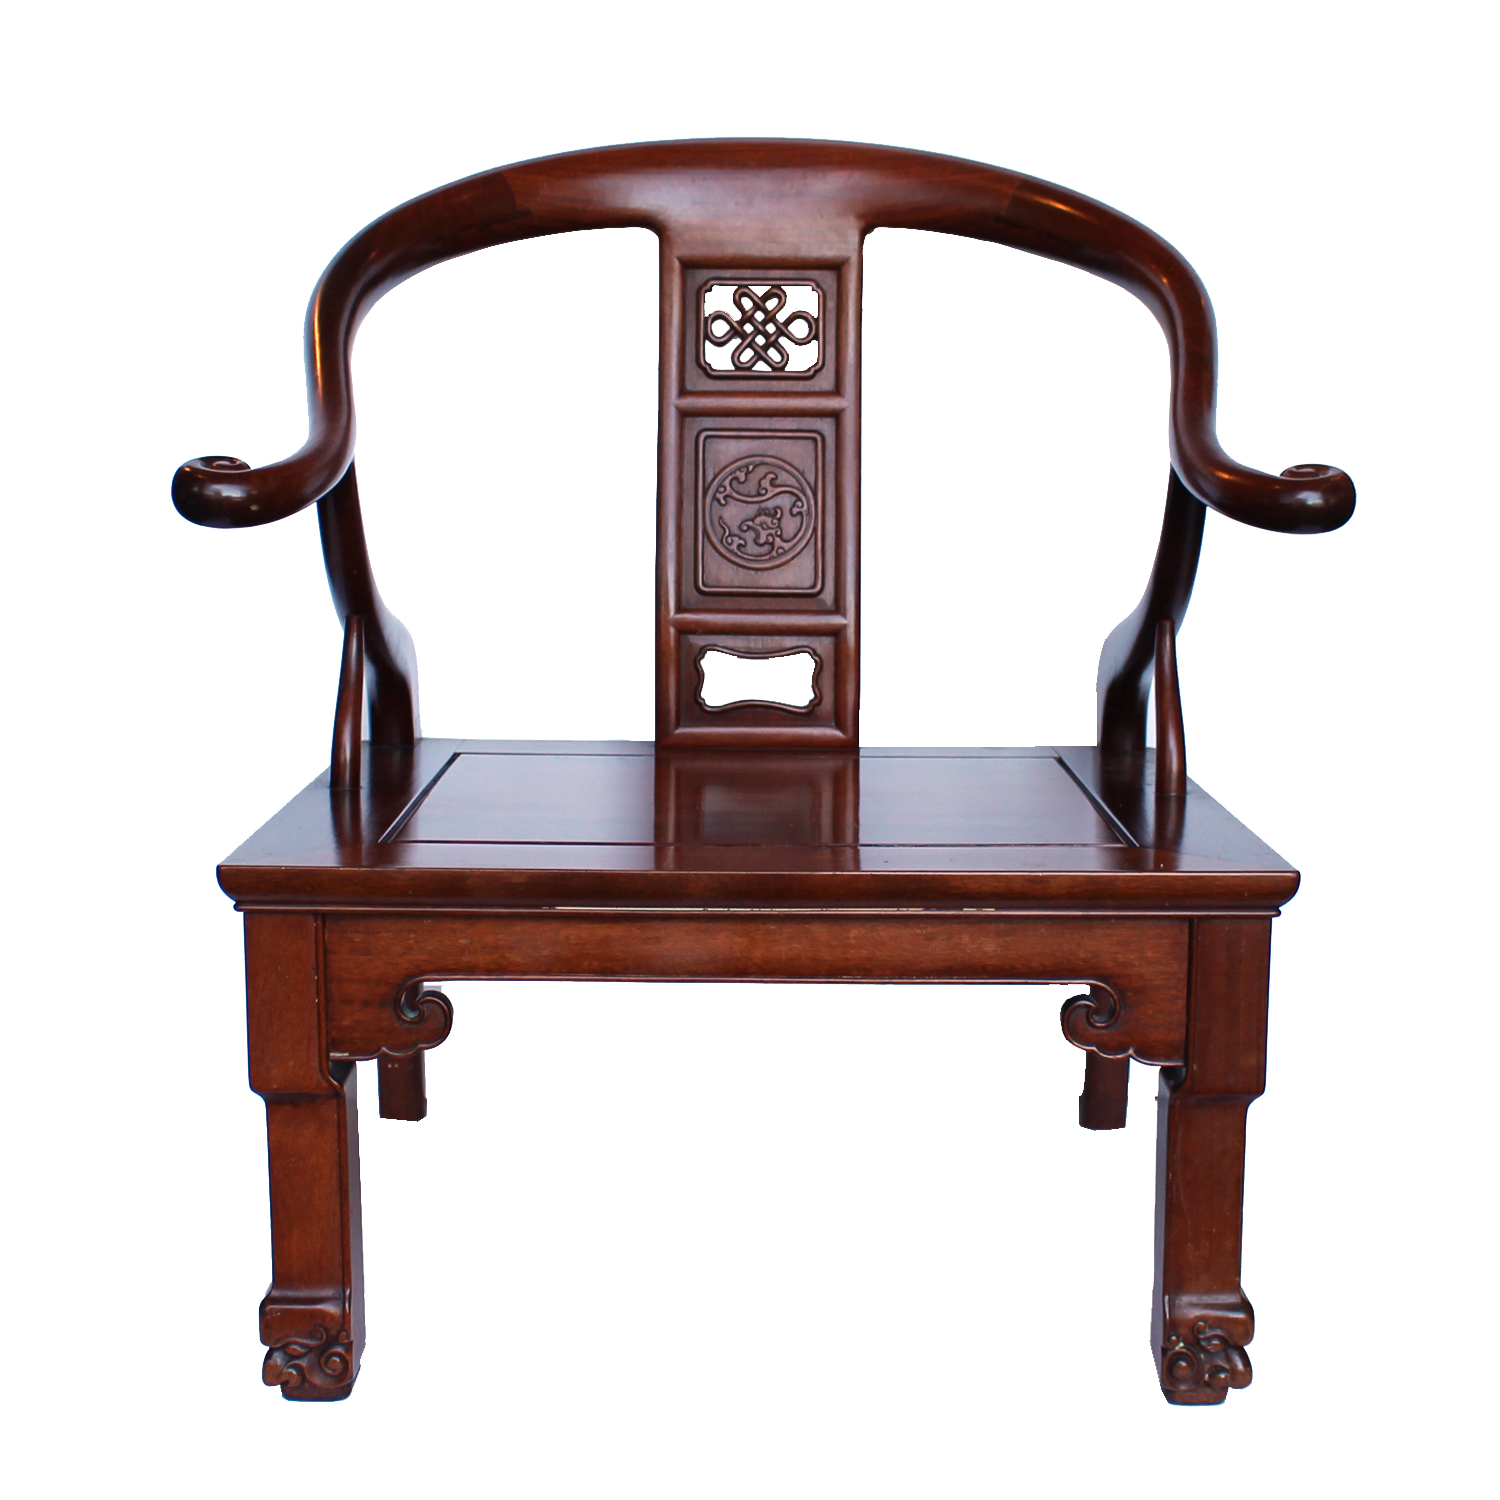 Low Chinese Chair with Carved Decoration, Mid 20th Century